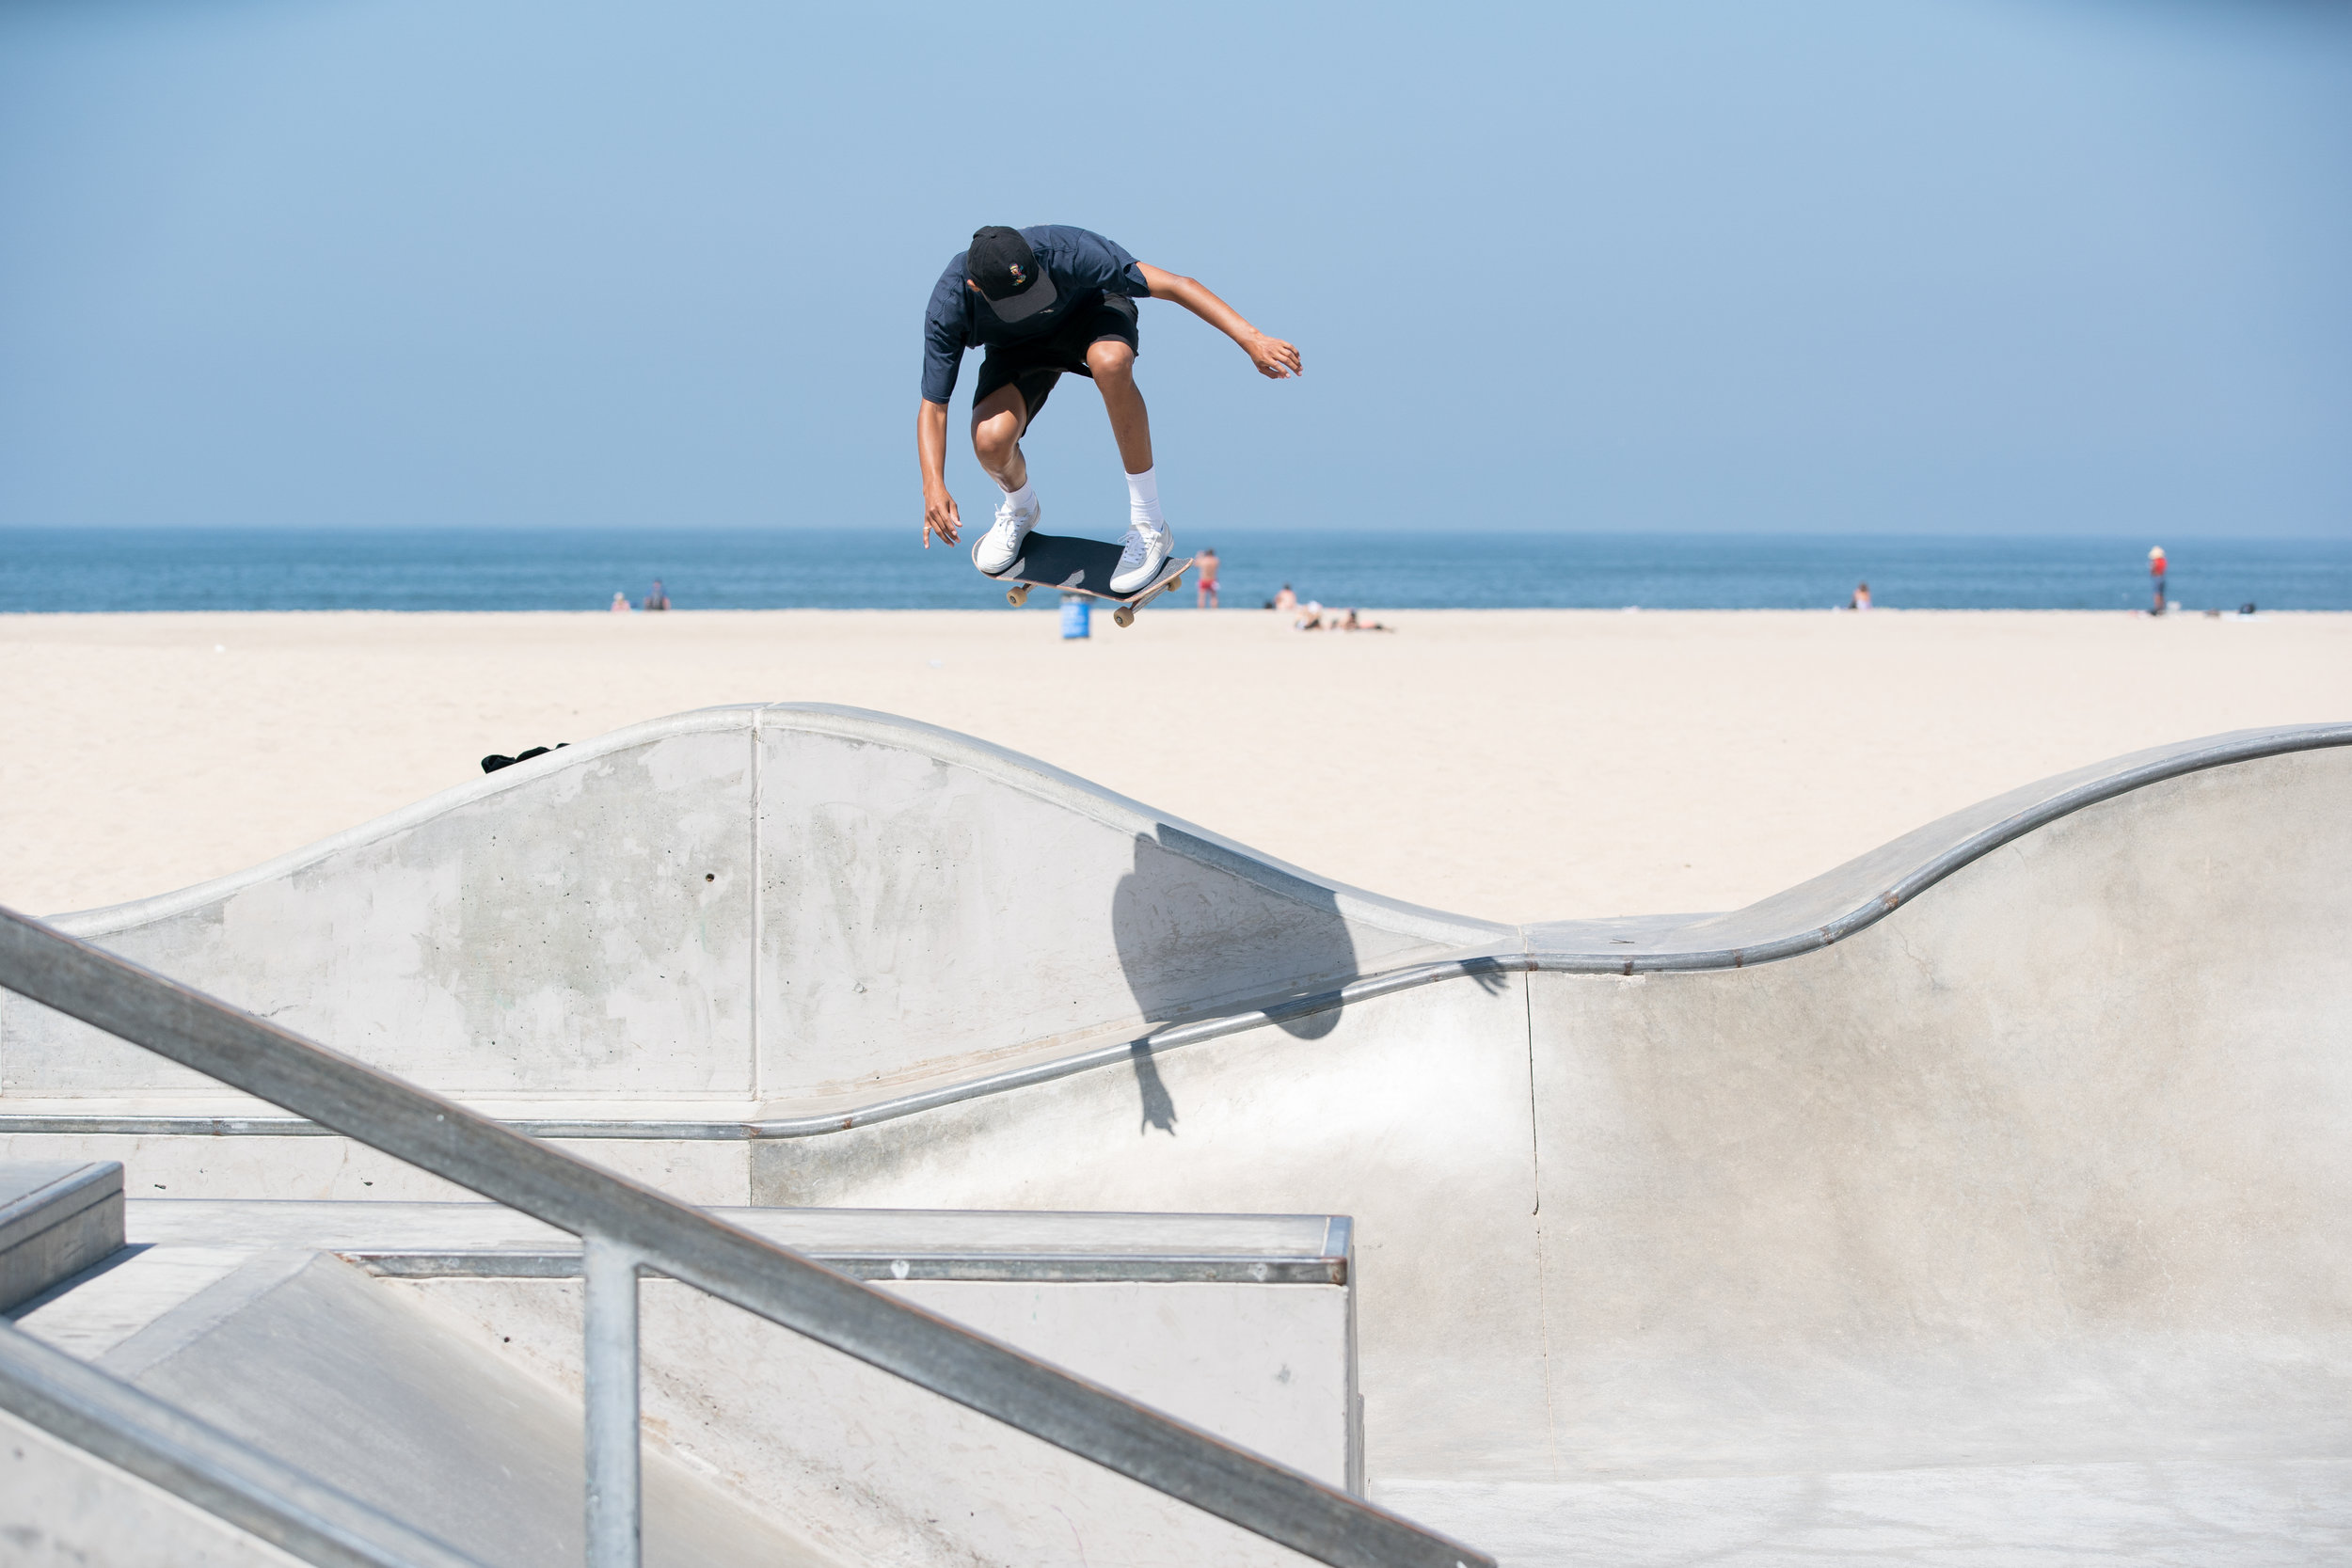 Ahhhh, Venice - We filmed at the skate park in Venice Beach, CA. Tough to not get the bystanders watching these guys shred in the marketing material.